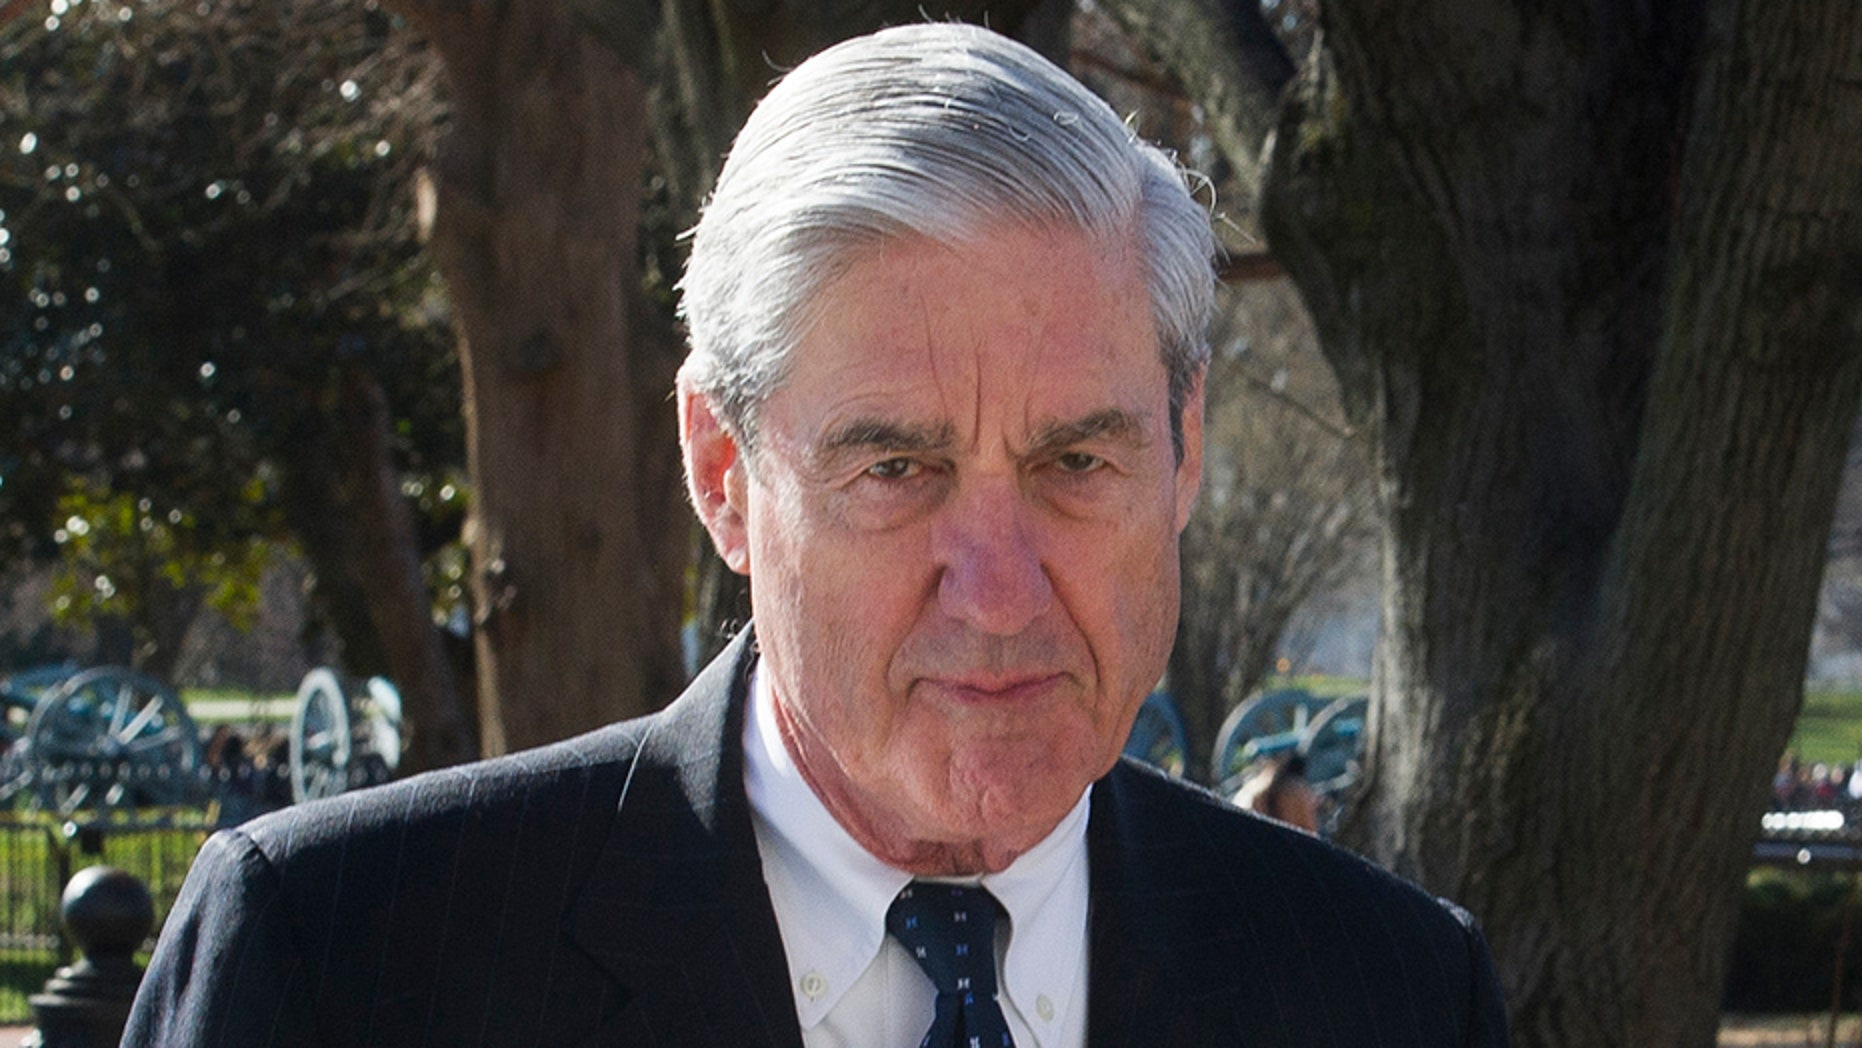 Fox News has dominated reviews in its report on Special Counsel Robert Mueller's report and outcomes.